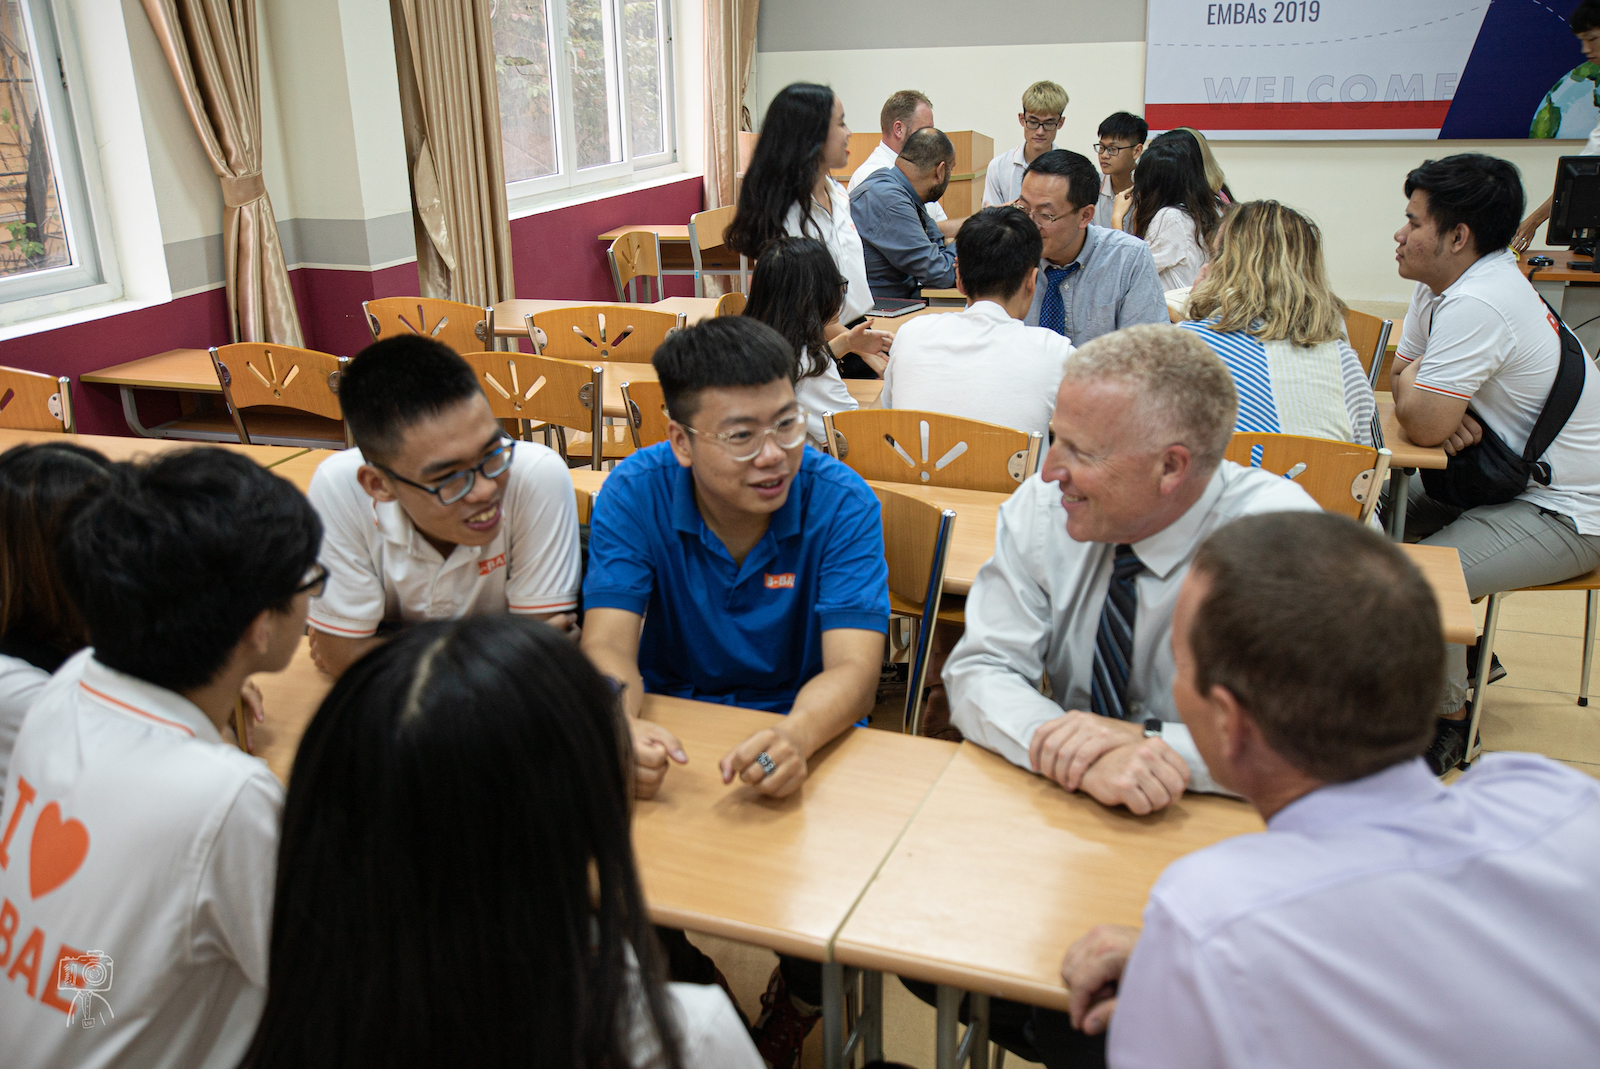 Executive MBA participants Brian Shields and Shannon Boroff visit with Vietnamese students.